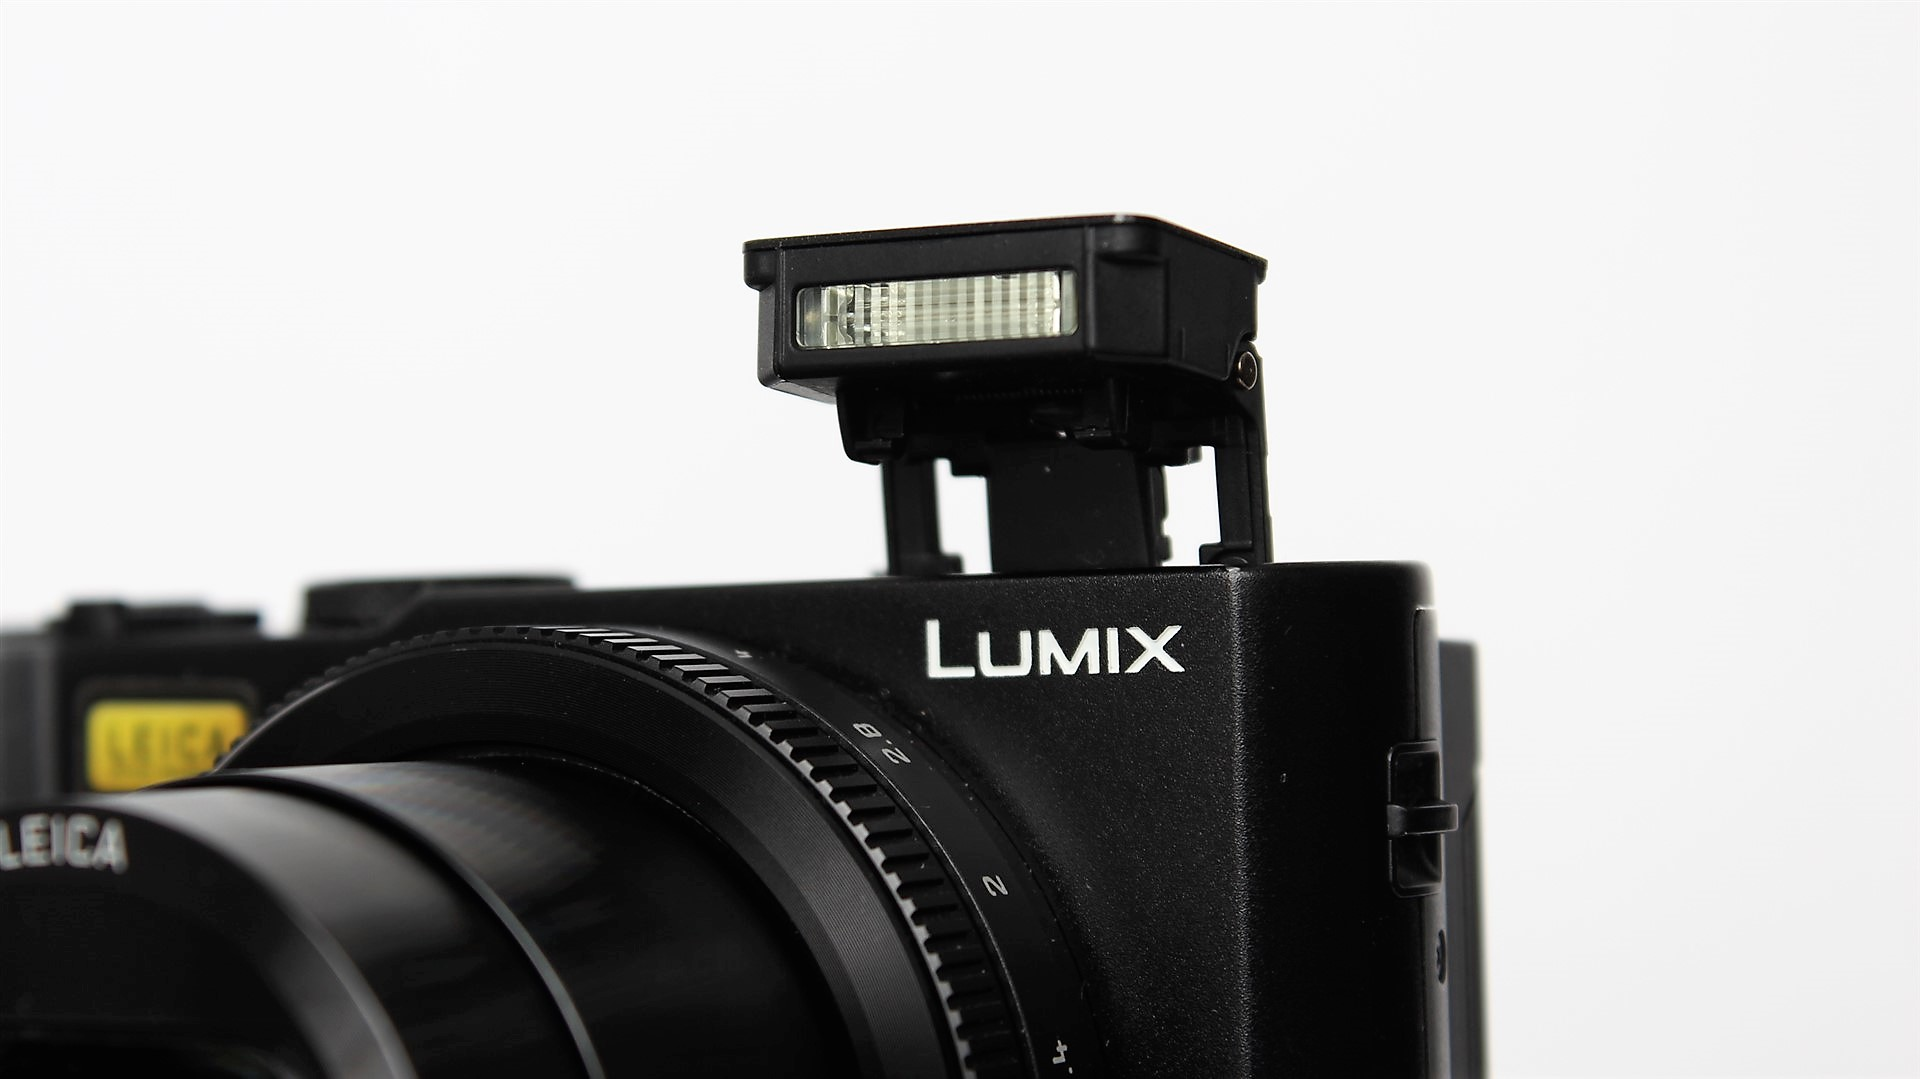 lumix camera hi tech - photo #25